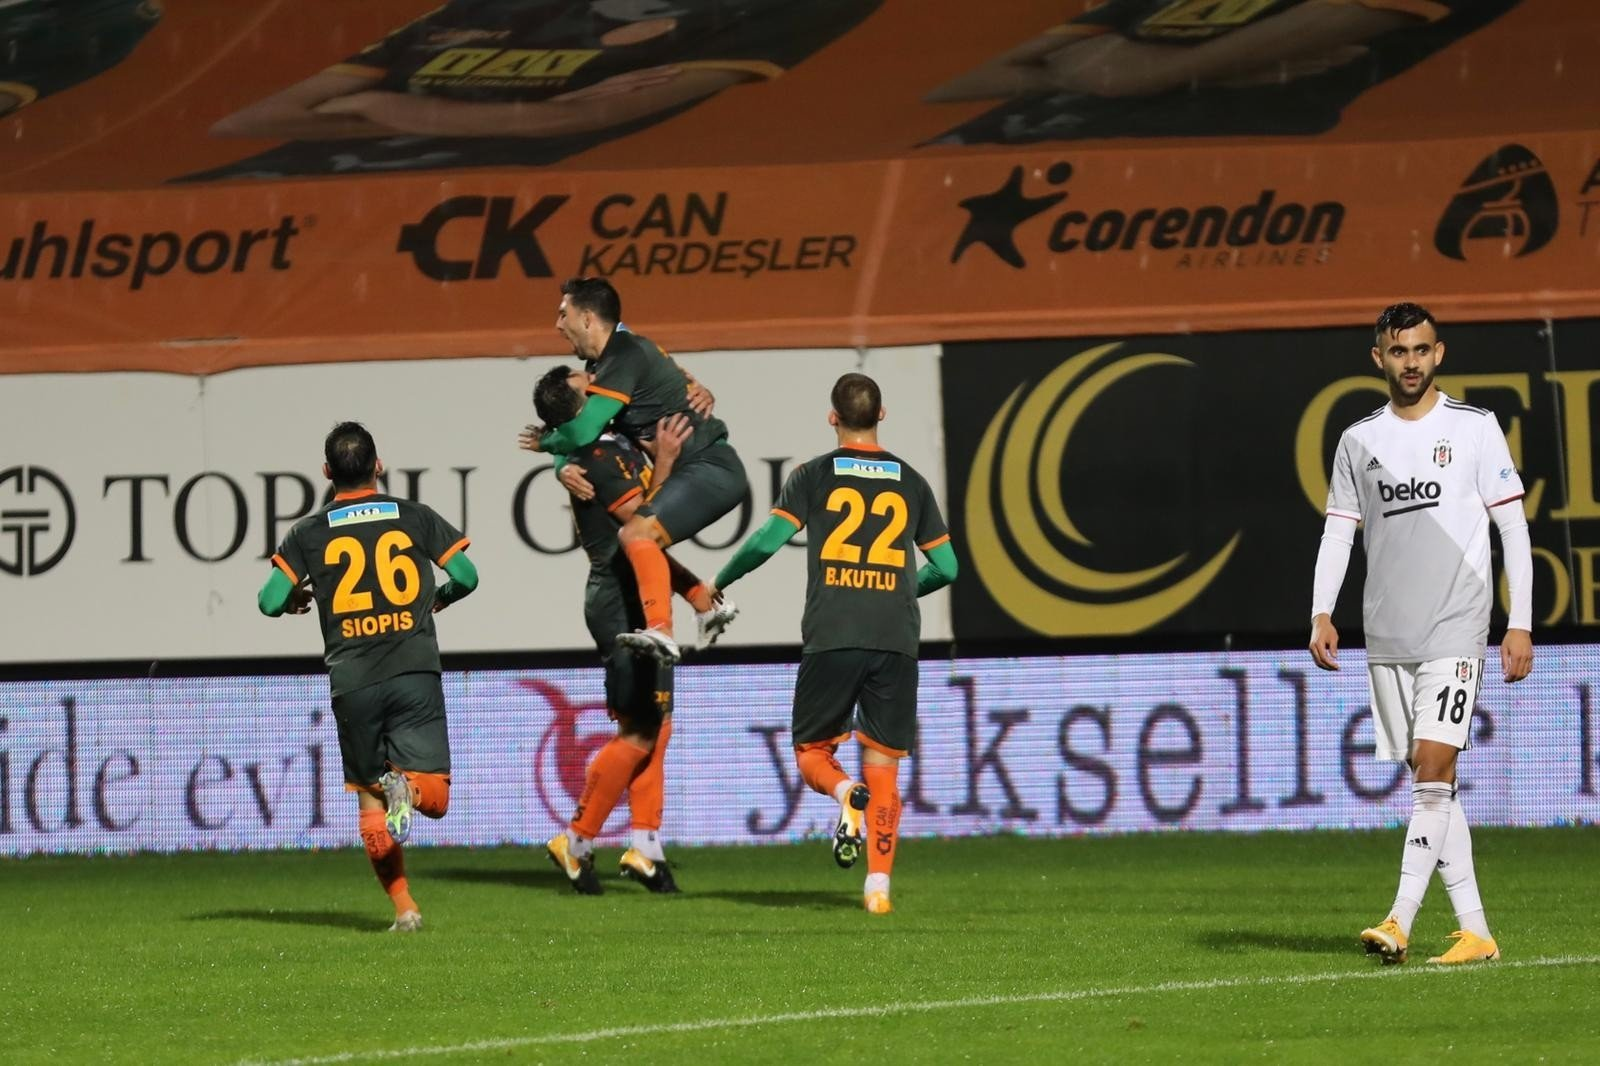 Beşiktaş's Rachid Ghezzal (R) walks across the field as Alanyaspor players celebrate winning the Süper Lig match in Antalya, Turkey, Dec. 13, 2020. (IHA Photo)